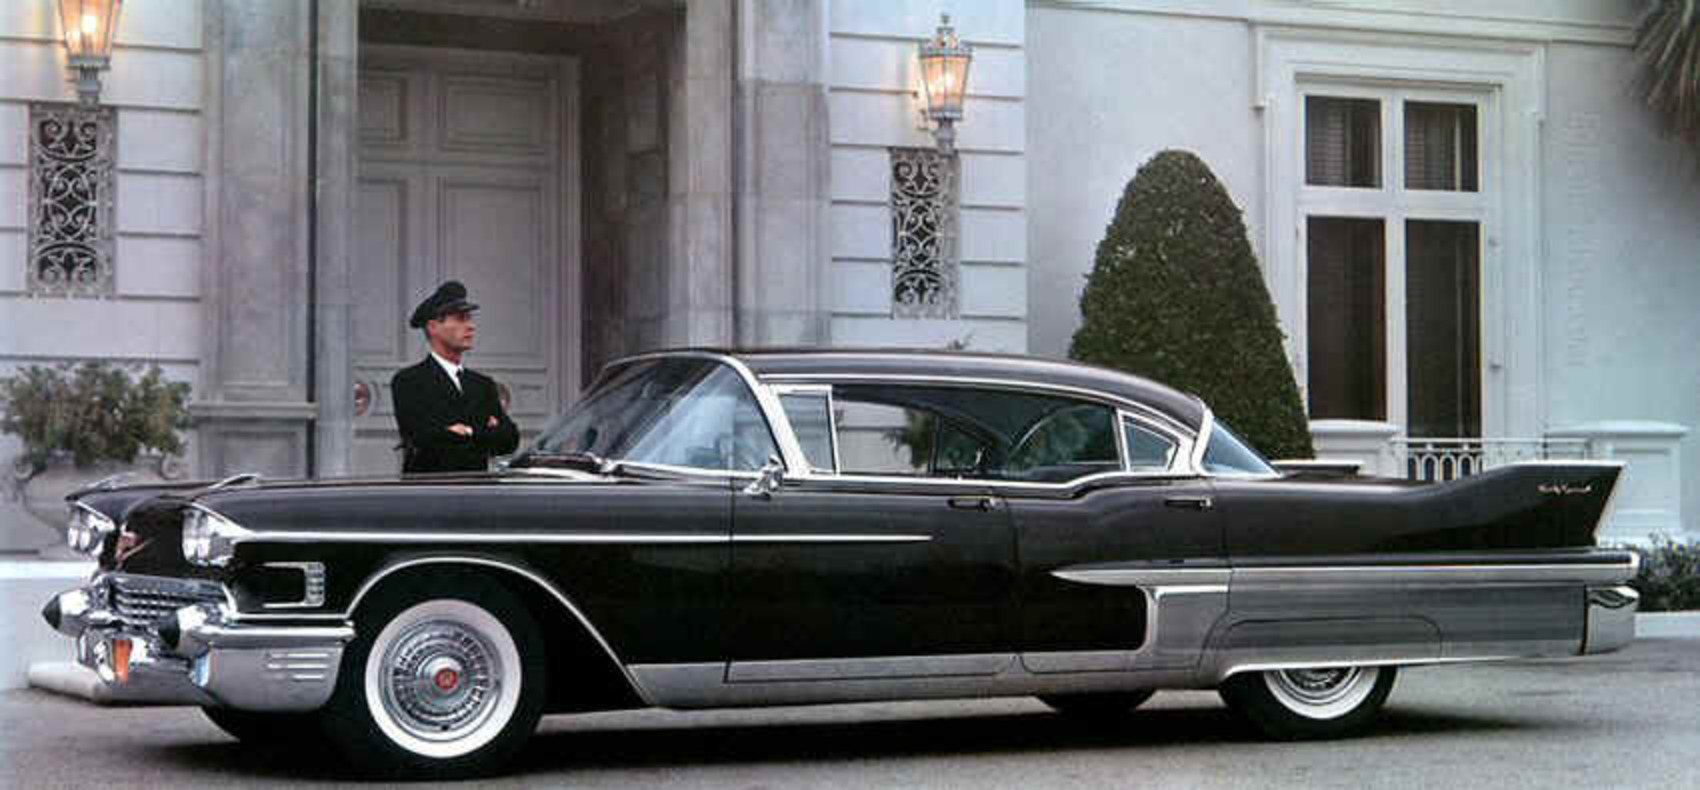 Cadillac Fleetwood 60 Special Brougham - cars catalog, specs, features,